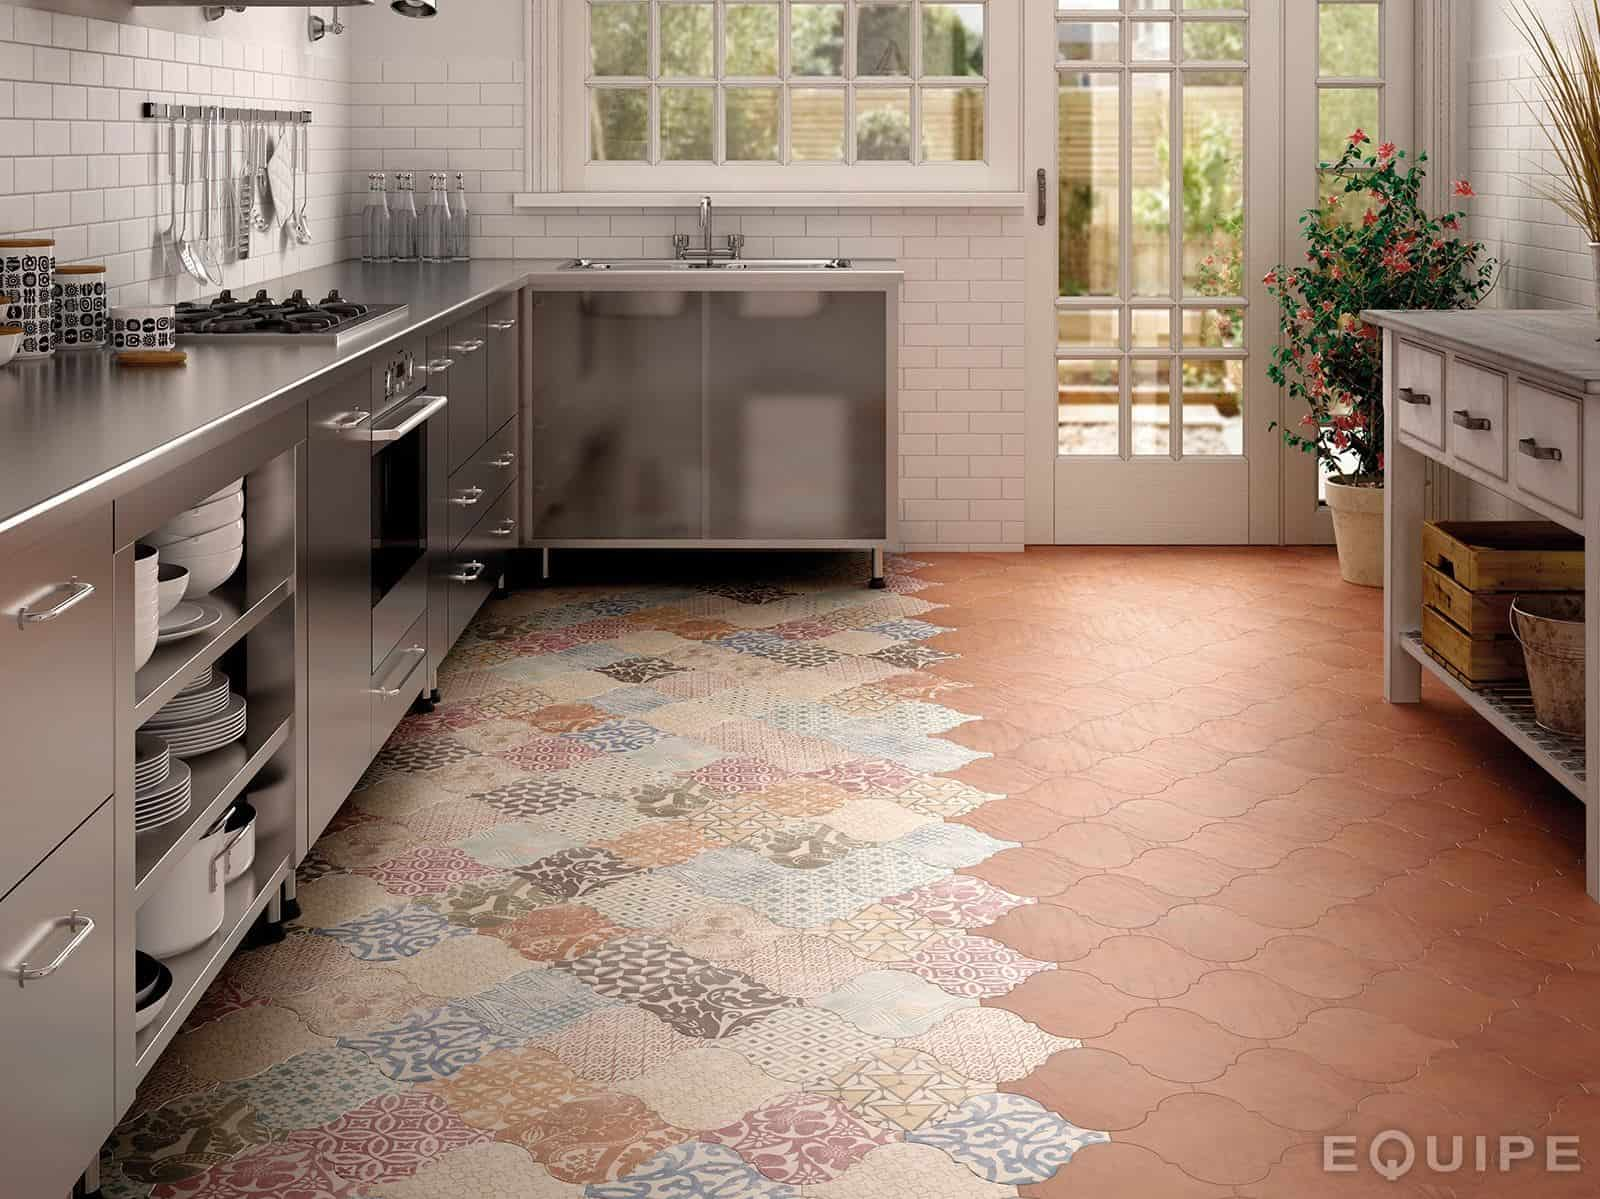 21 arabesque tile ideas for floor wall and backsplash view in gallery arabesque tile kitchen floor patchwork equipe 4g dailygadgetfo Gallery